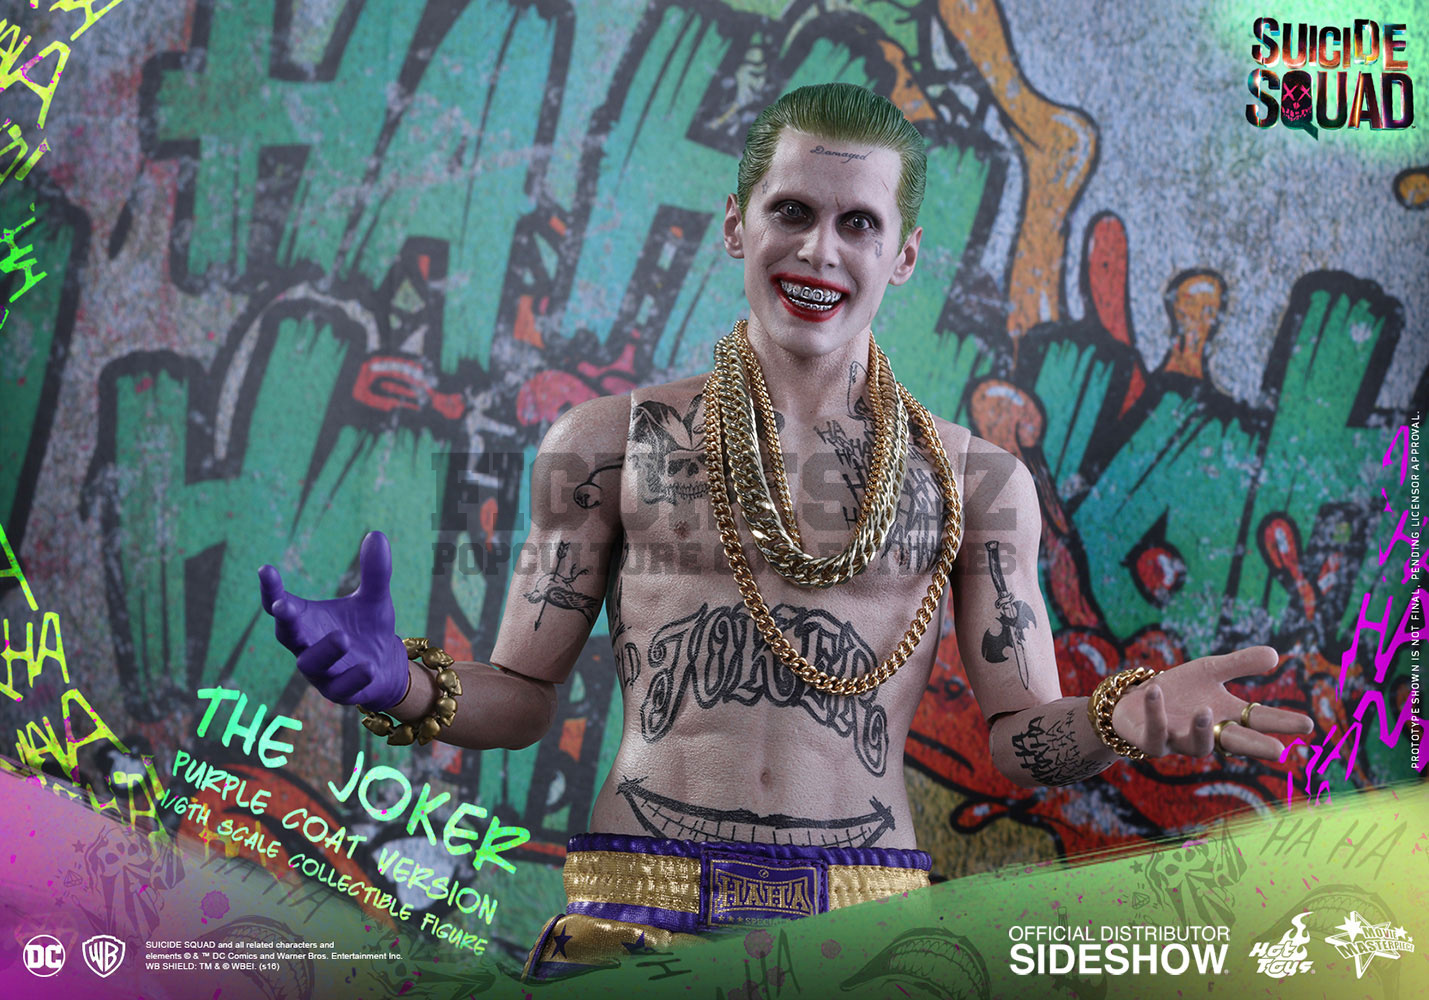 Suicide Squad The Joker Purple Coat Version Movie